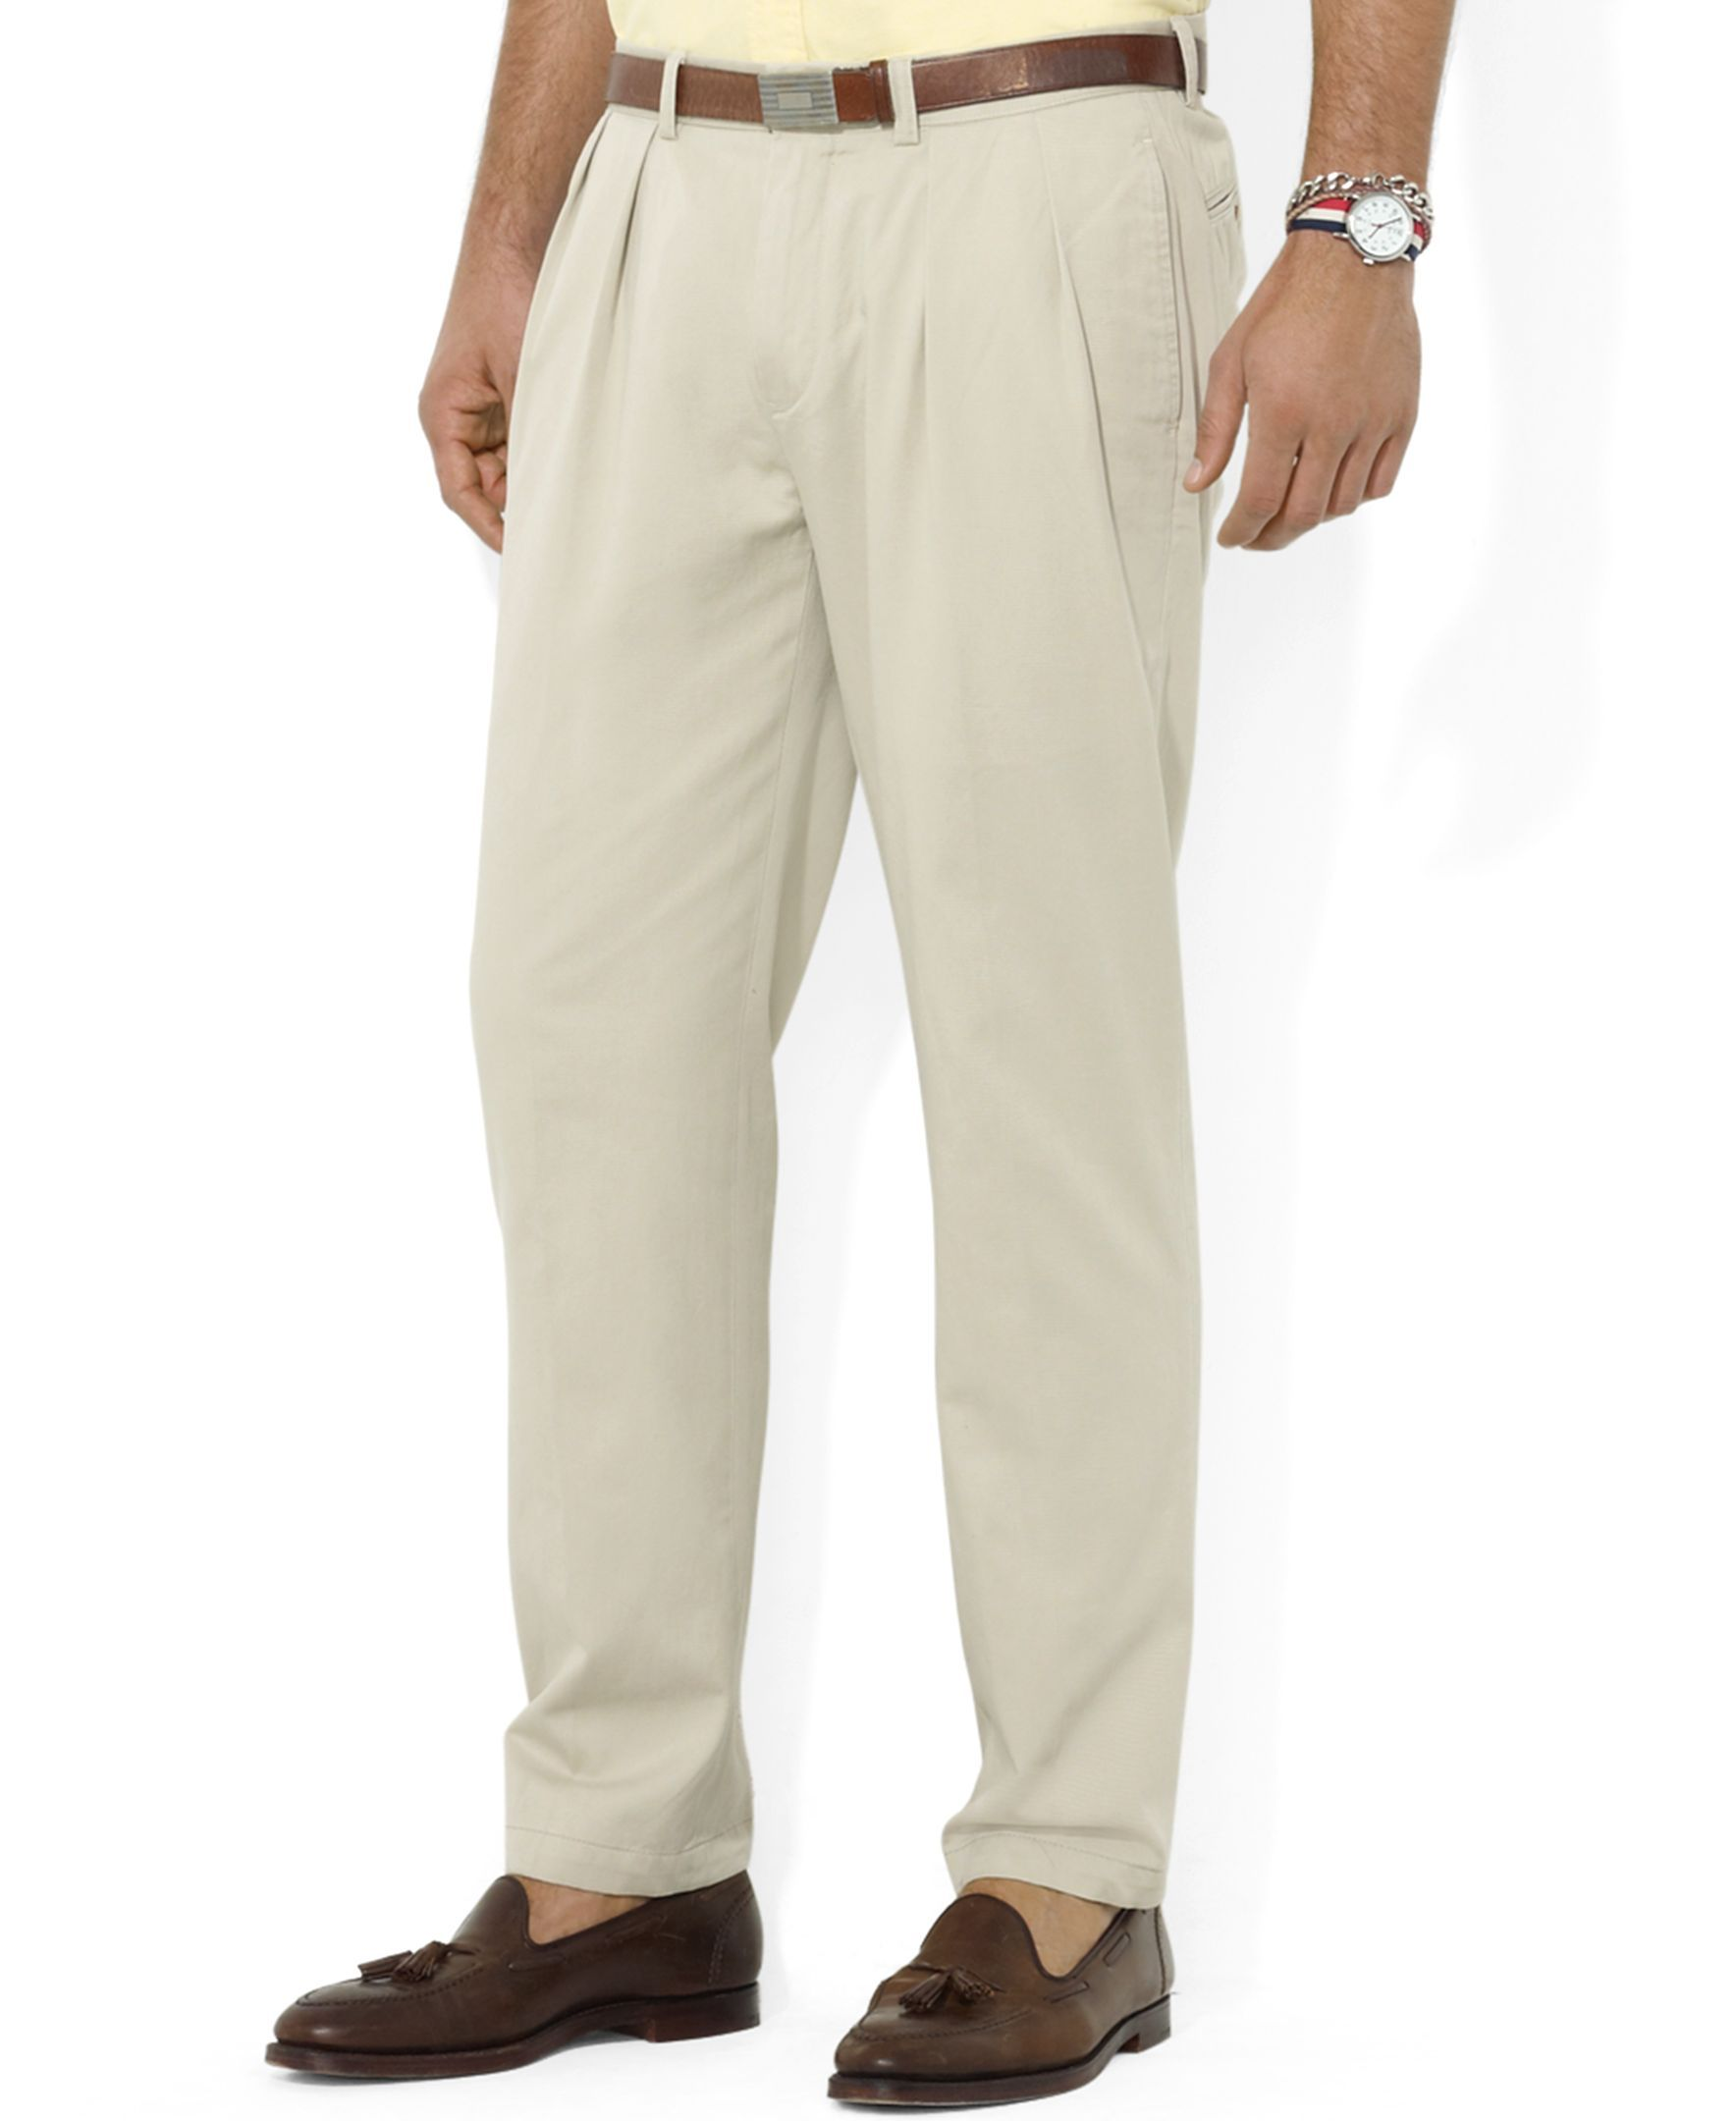 Pants PantsClassic Pleated Chino Core Ralph Fit Lauren Polo fv6ybY7g